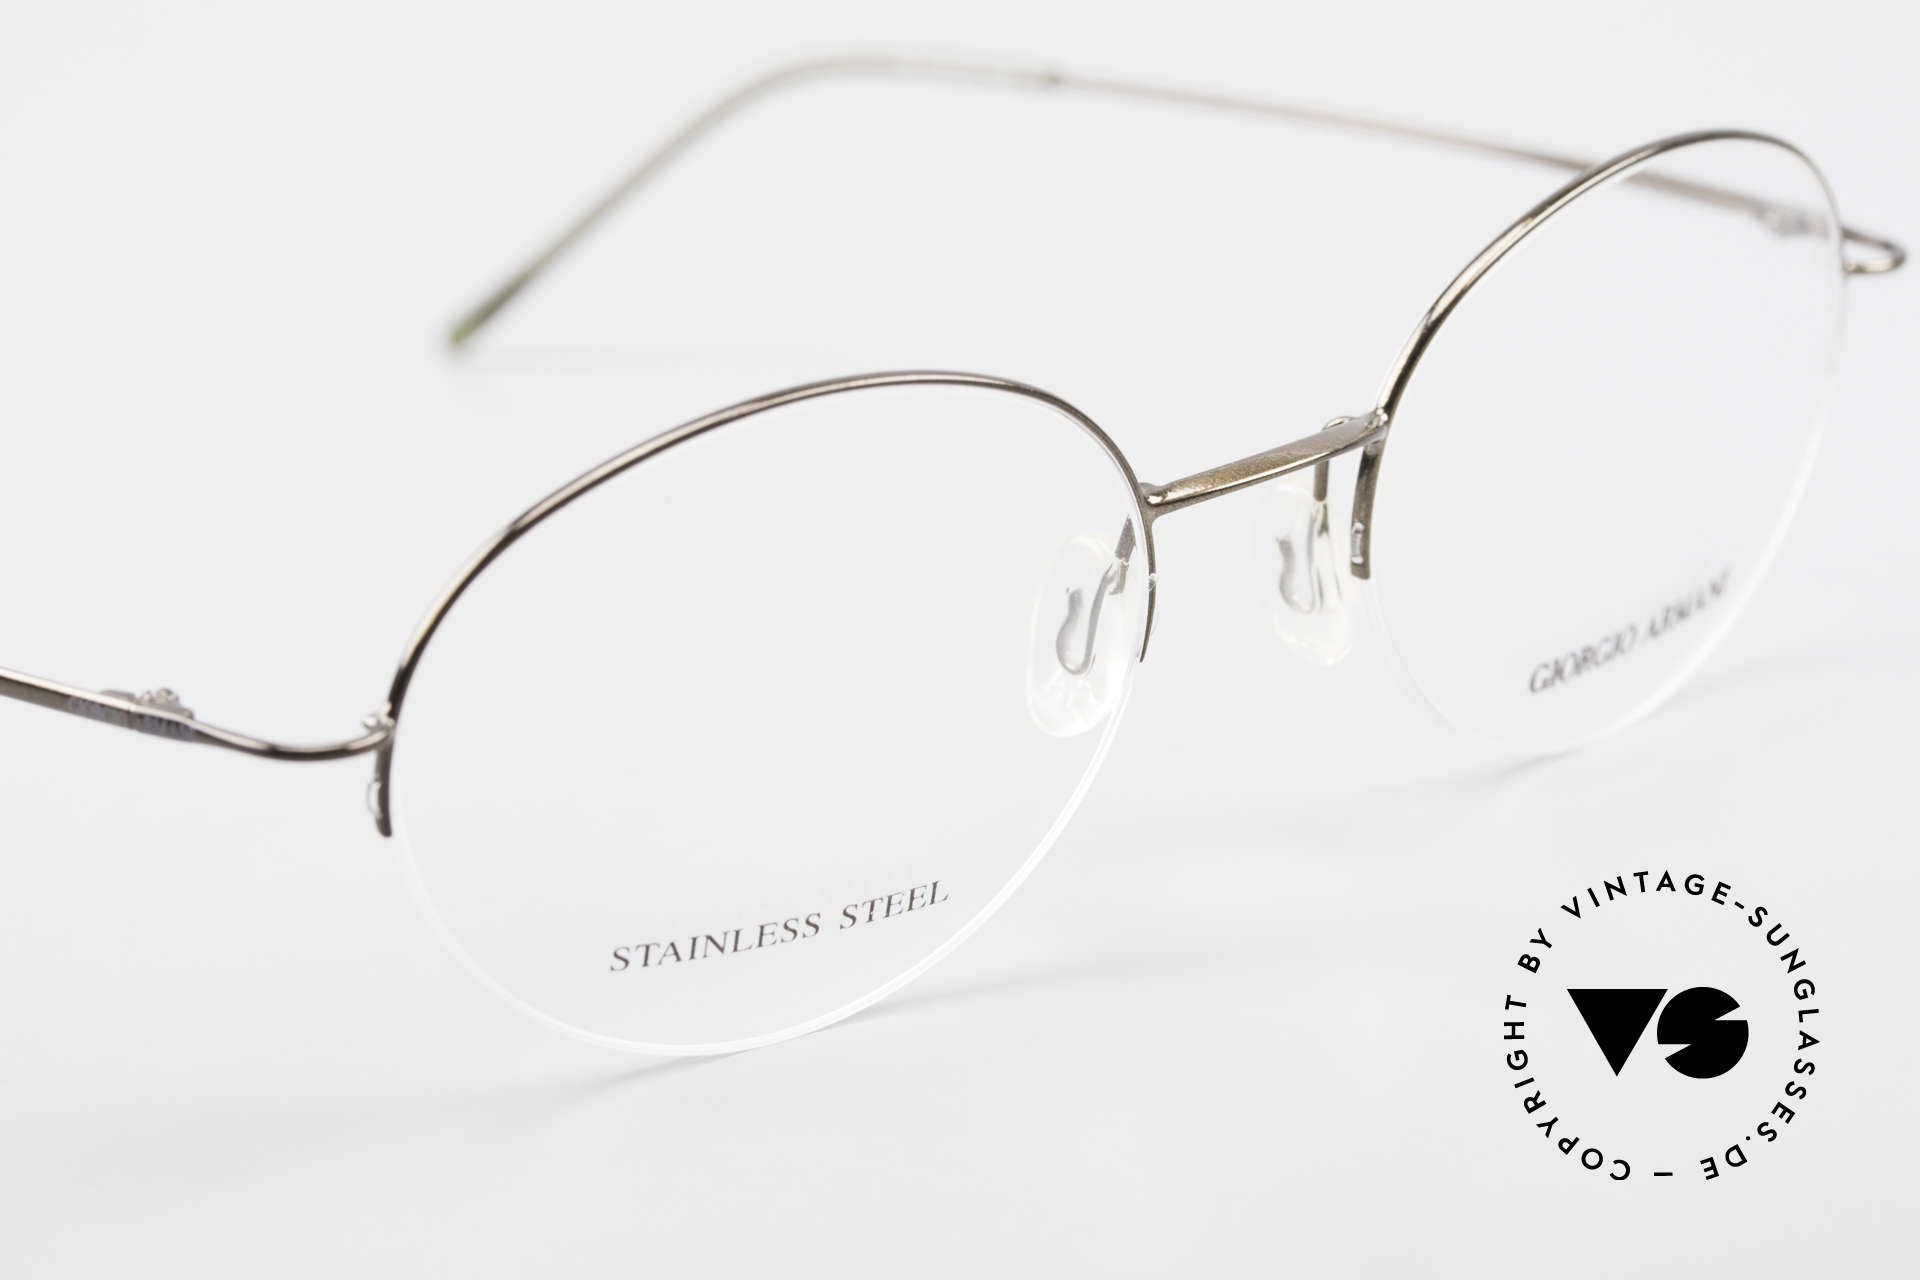 Giorgio Armani 27N Small Round Eyeglasses Nylor, unworn original from the mid. 1990's (SMALL SIZE), Made for Men and Women